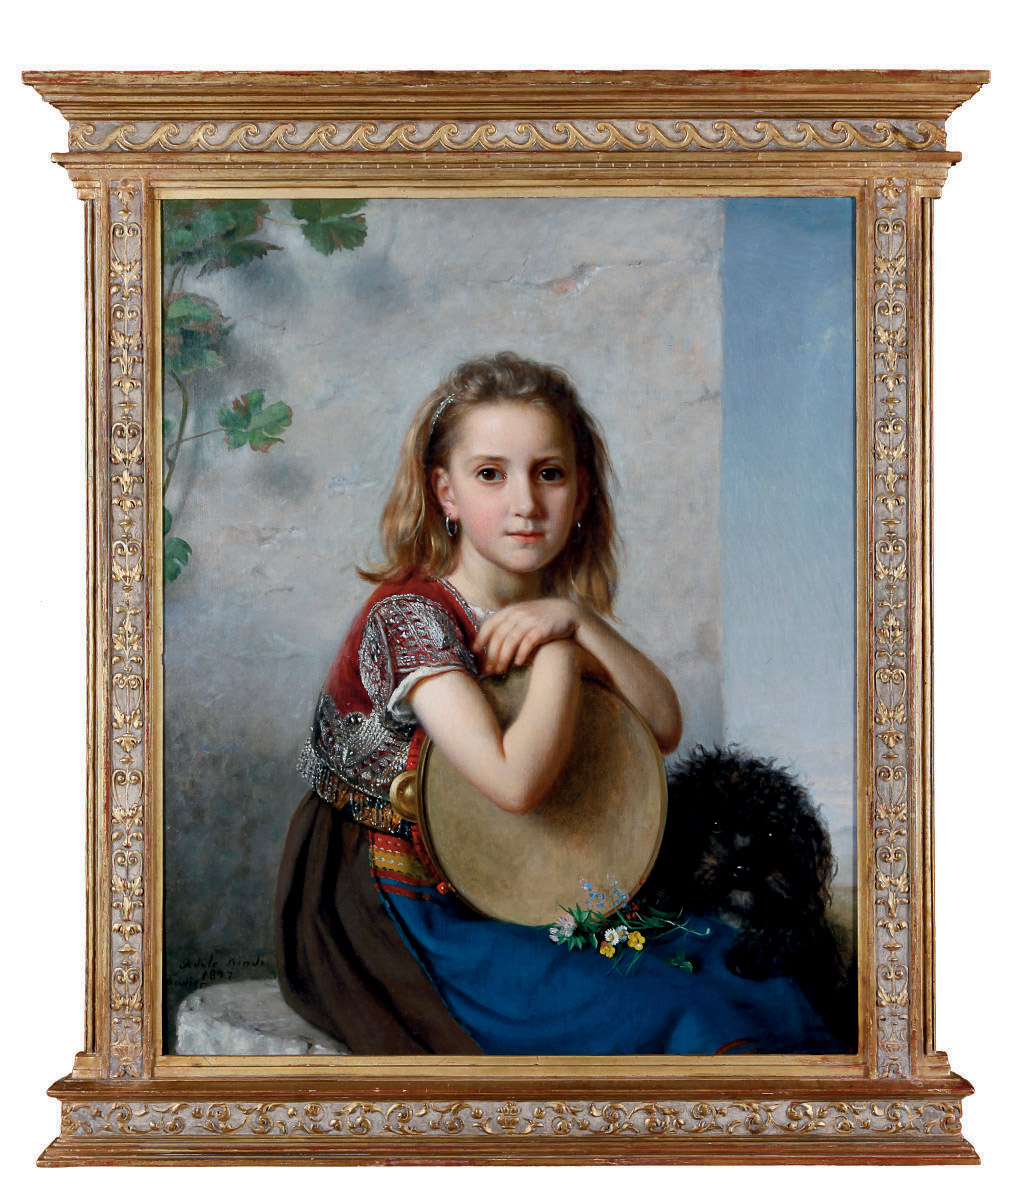 A portrait of a young girl and her dog